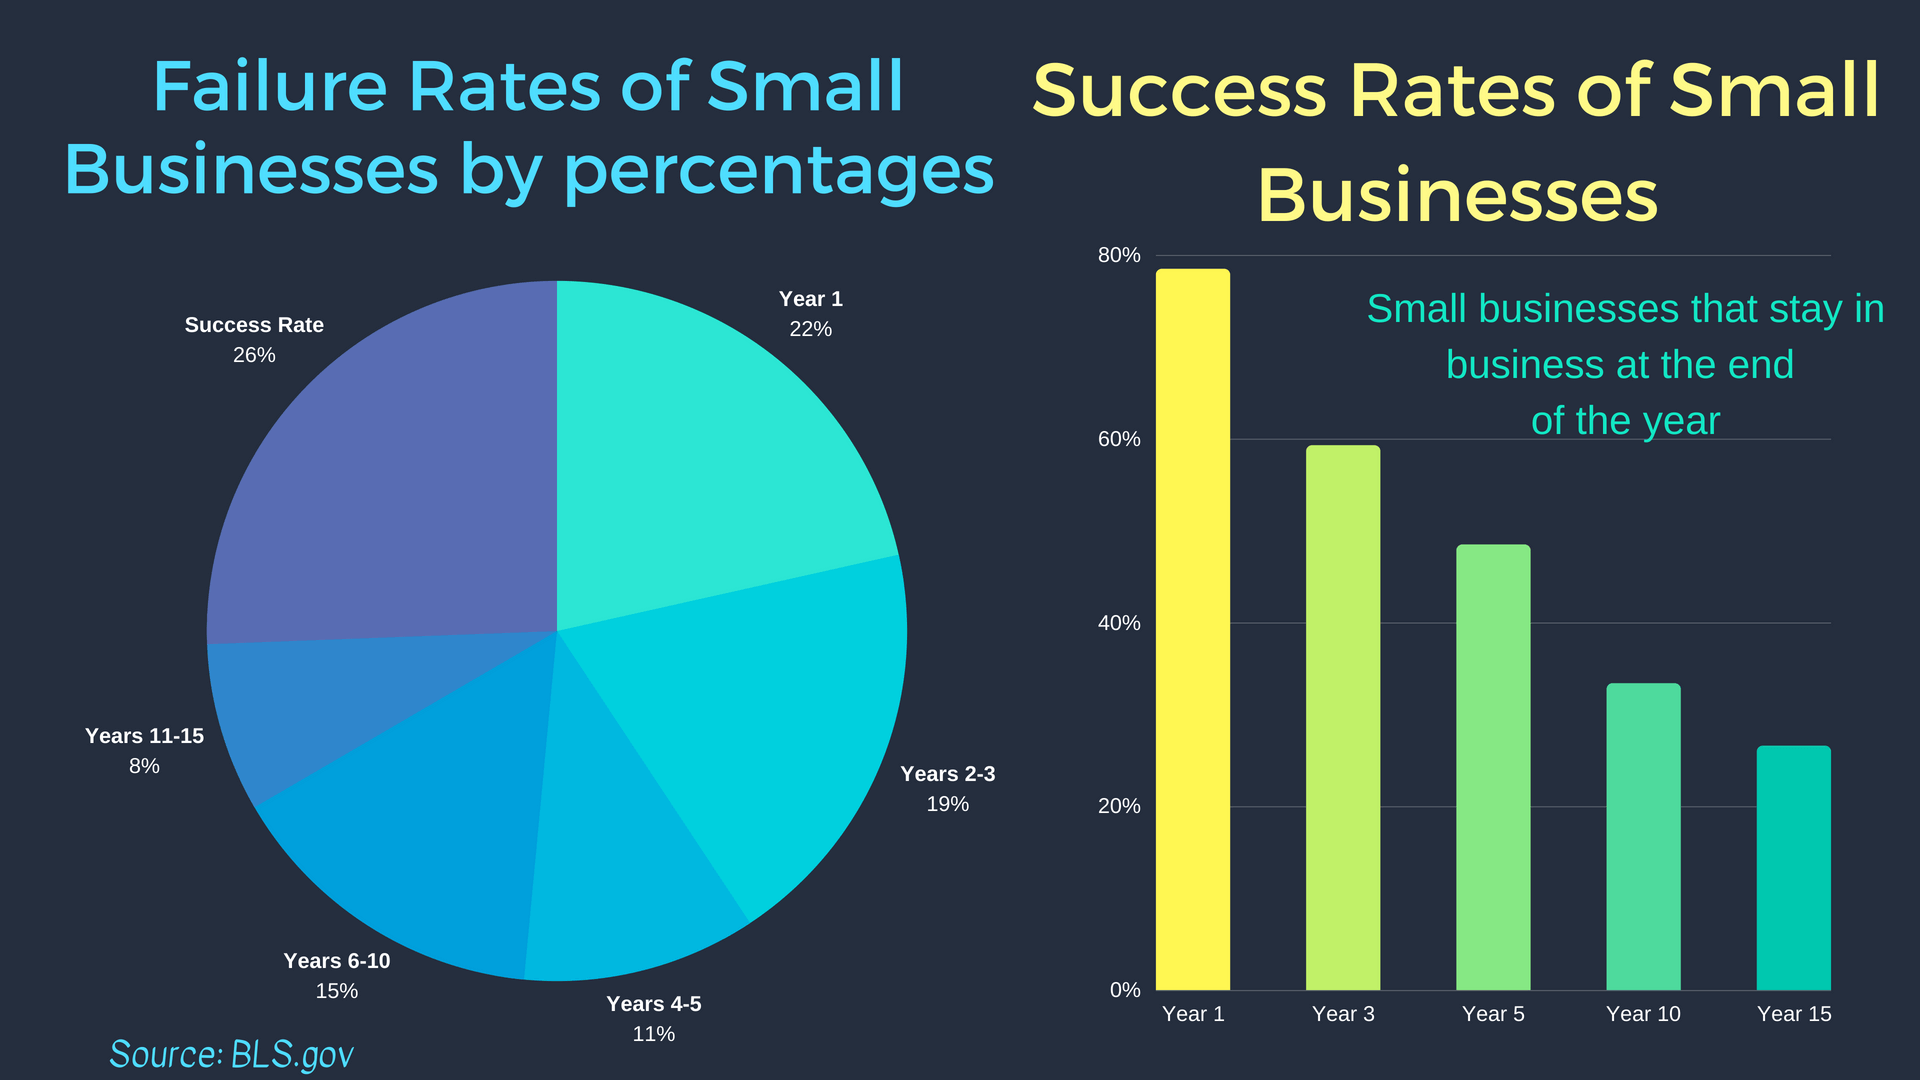 The annual fail rate for small businesses years 1-15 Pie Graph and the succecss rate for SMBs years 1-15 Line graph